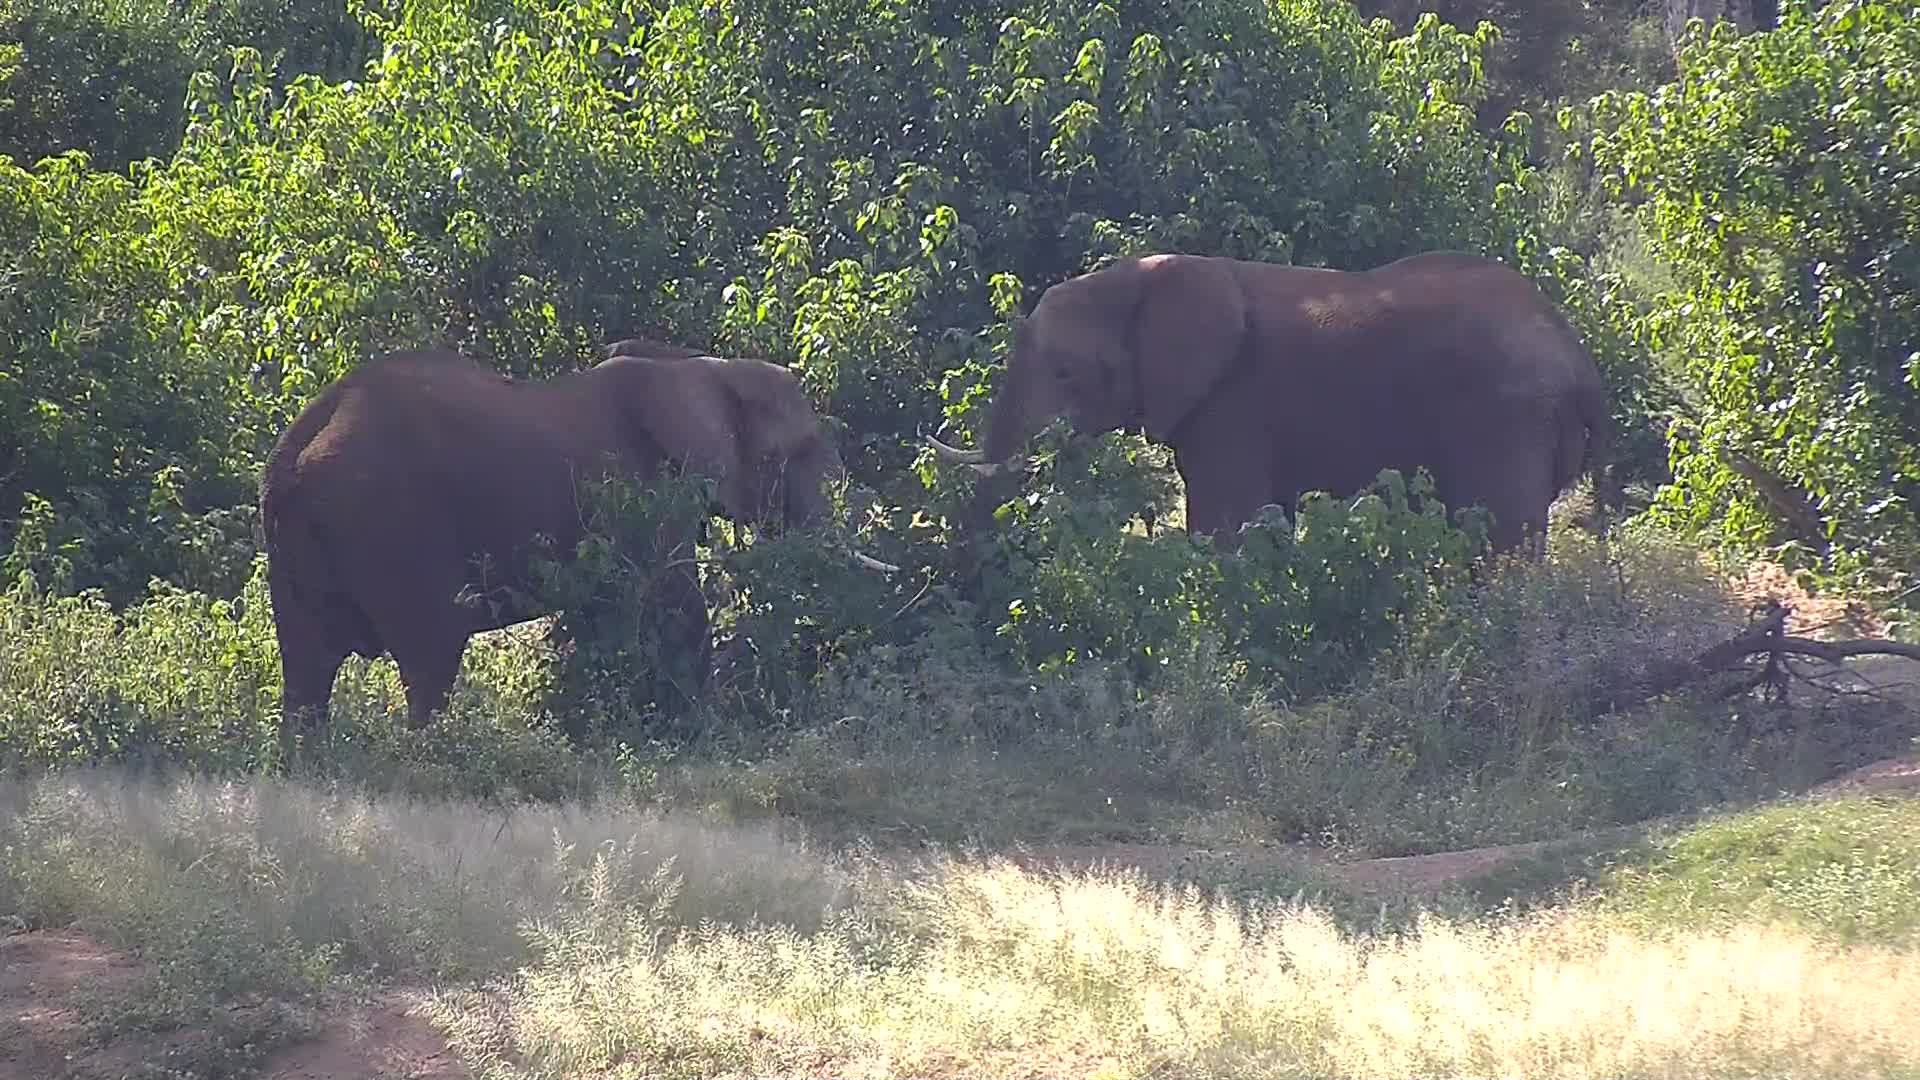 VIDEO:  Elephant bulls sparring, Part 2